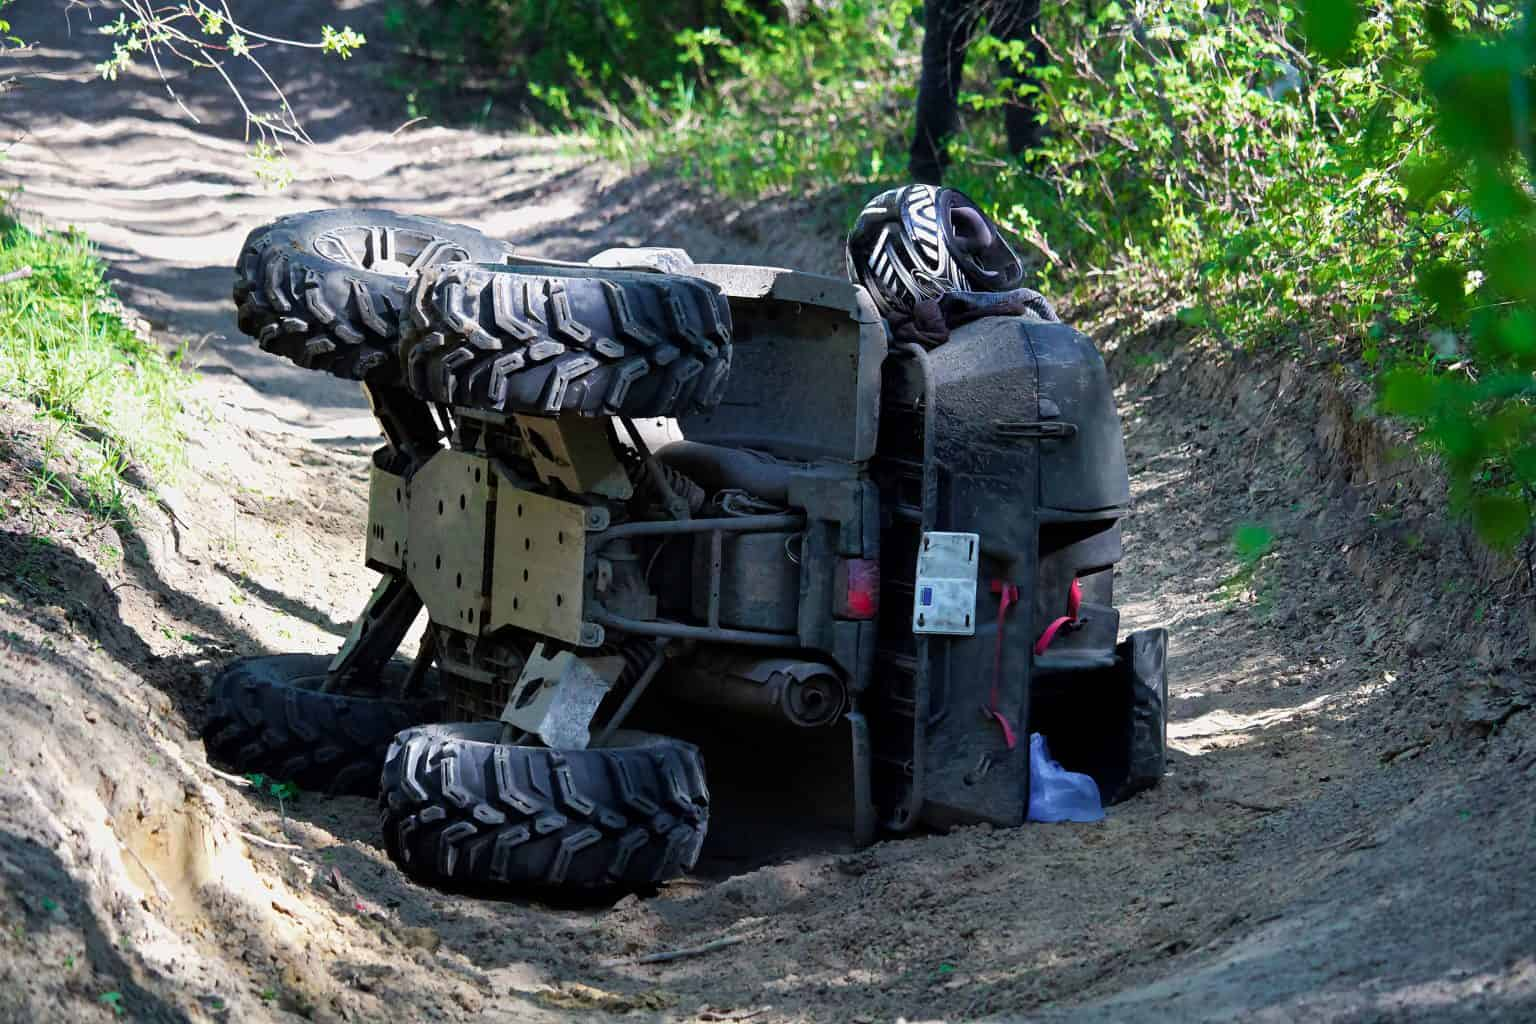 Quad bike rollover accidents are a significant cause of deaths and severe injuries in rural workplaces.